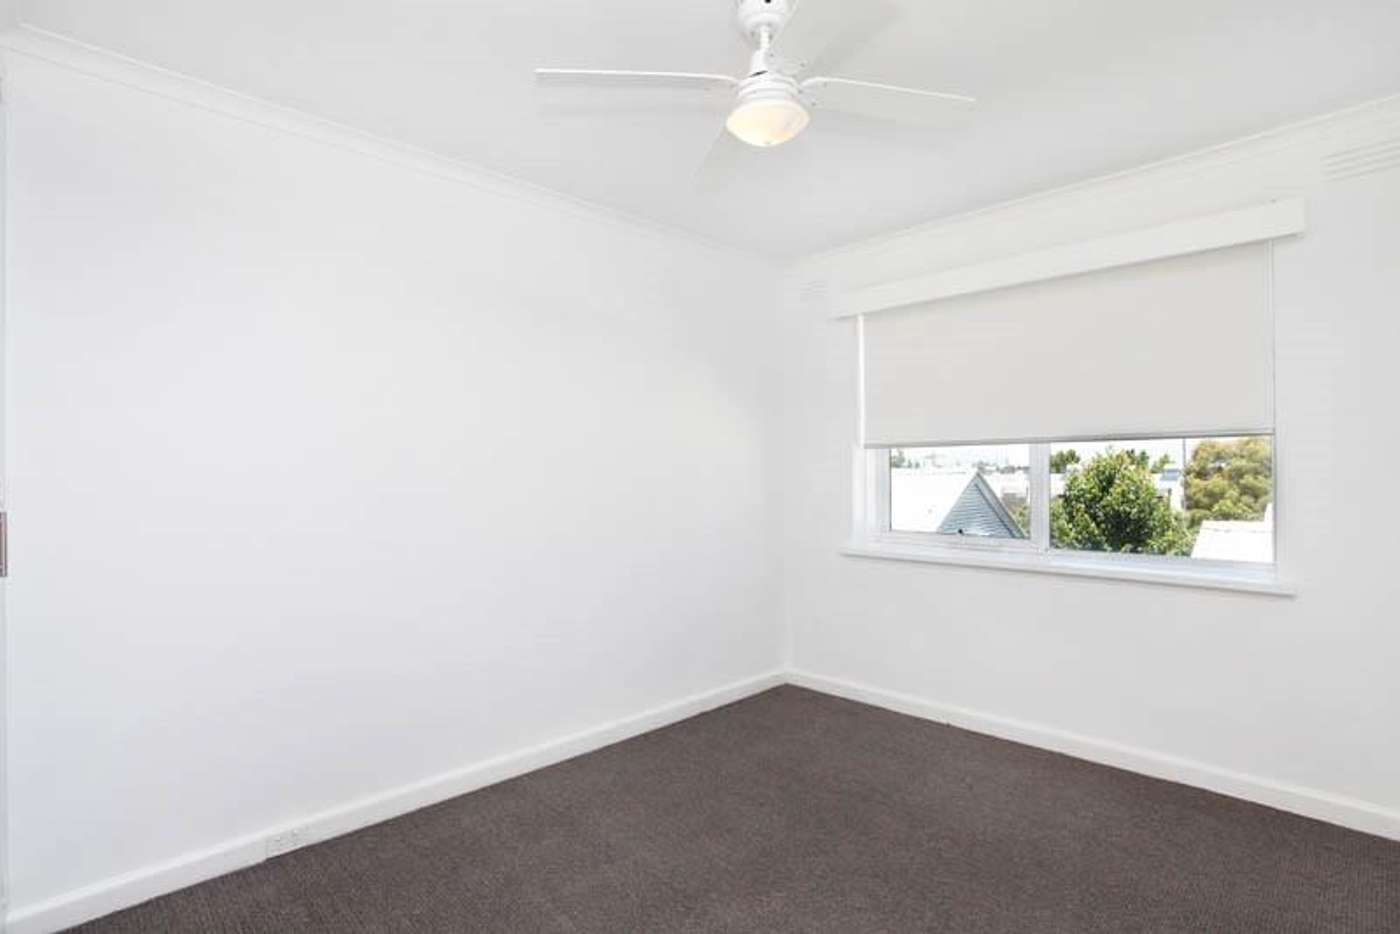 Sixth view of Homely apartment listing, 11/5 Wattle Street, West Footscray VIC 3012